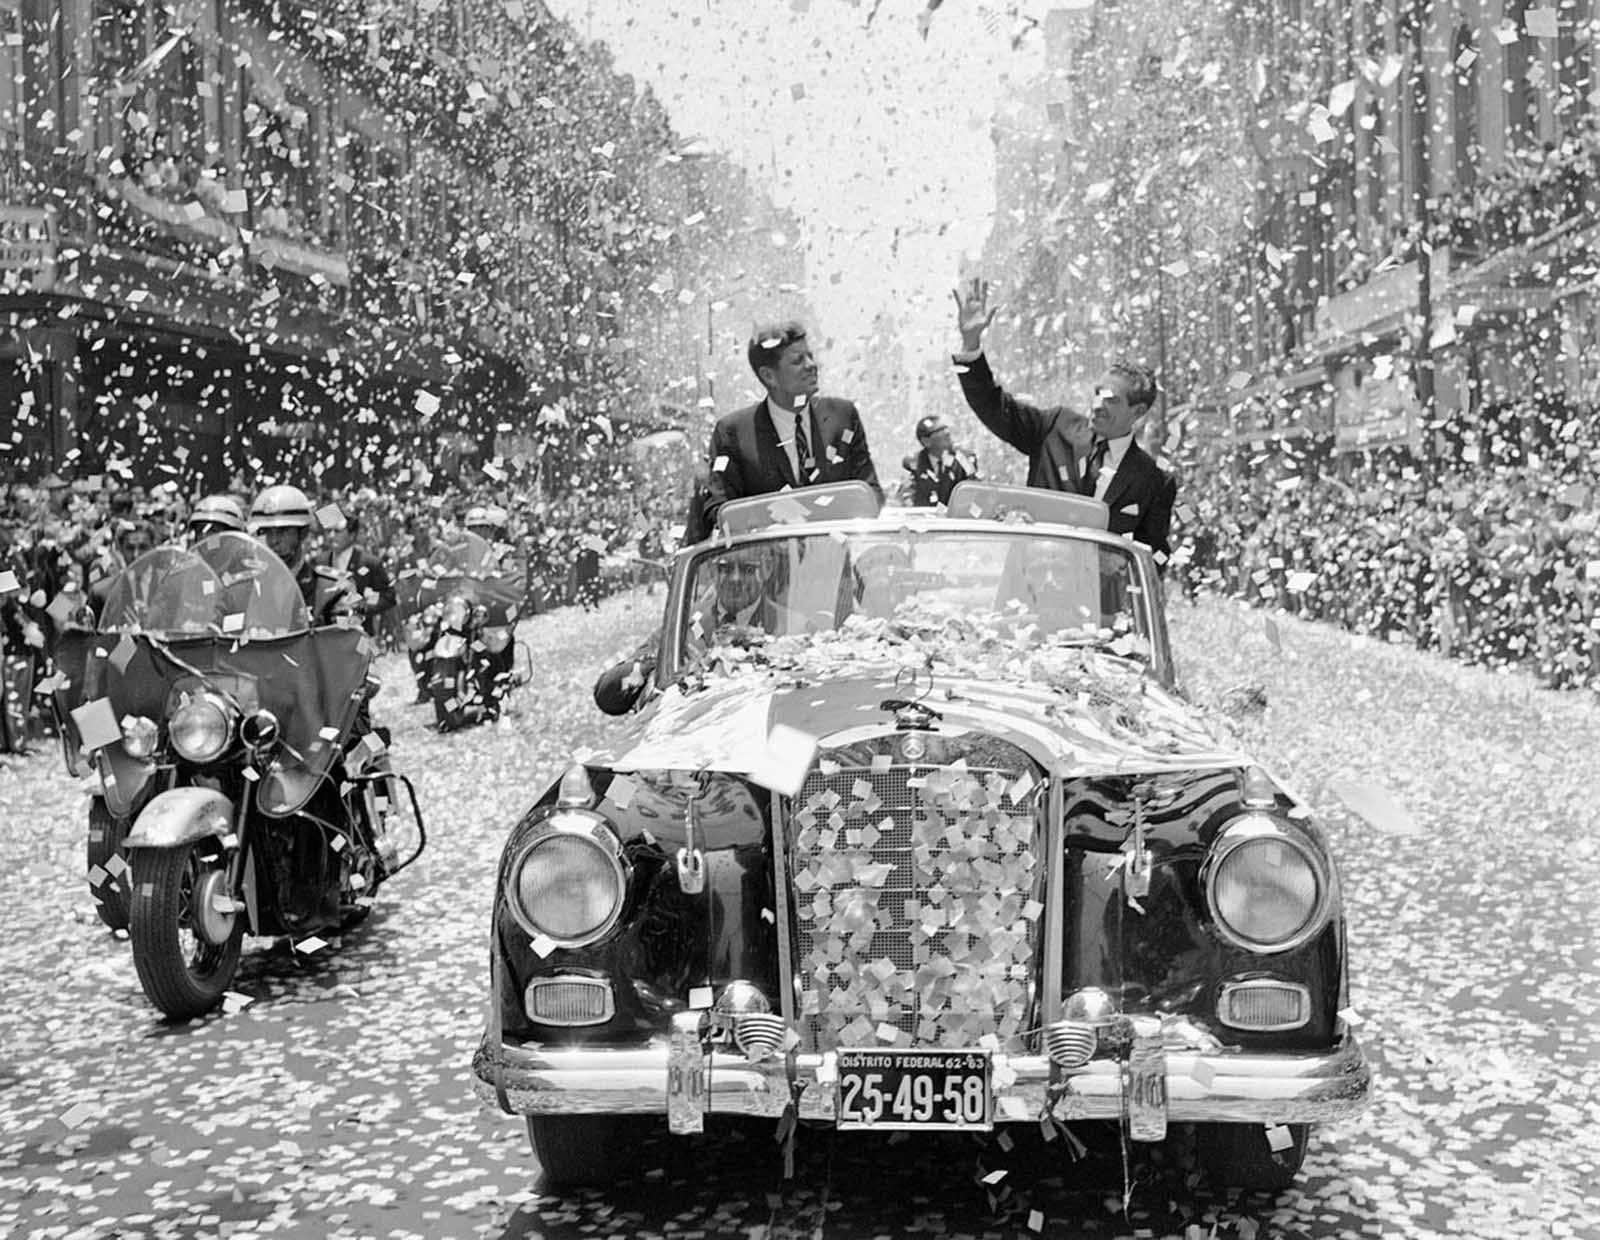 U.S. President John F. Kennedy and Mexican President Adolfo Lopez Mateos are showered with tons of confetti and paper, on June 29, 1962, as they travel down one of Mexico City's boulevards shortly after Kennedy's arrival for a three-day visit.